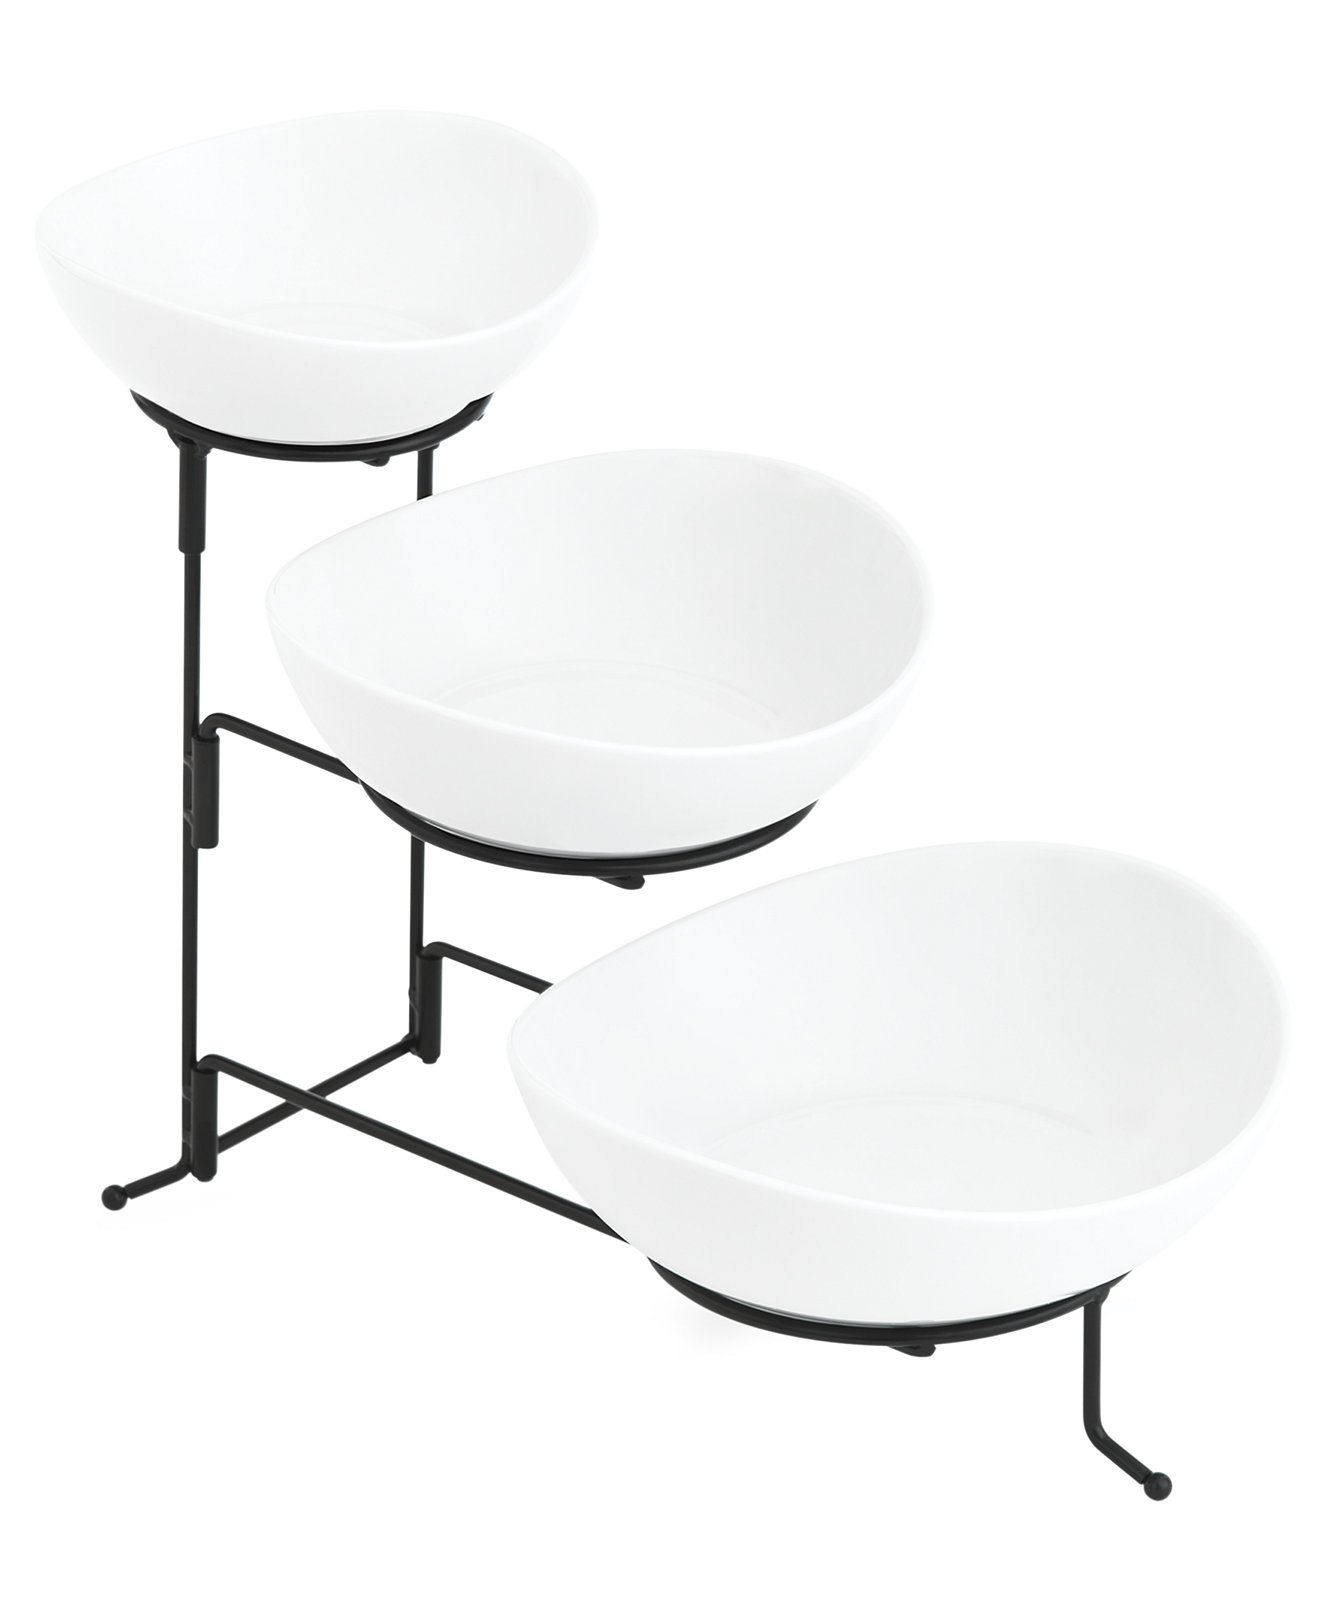 The Cellar Whiteware 3 Tiered Oval Server - Serveware - Dining & Entertaining - Macy's